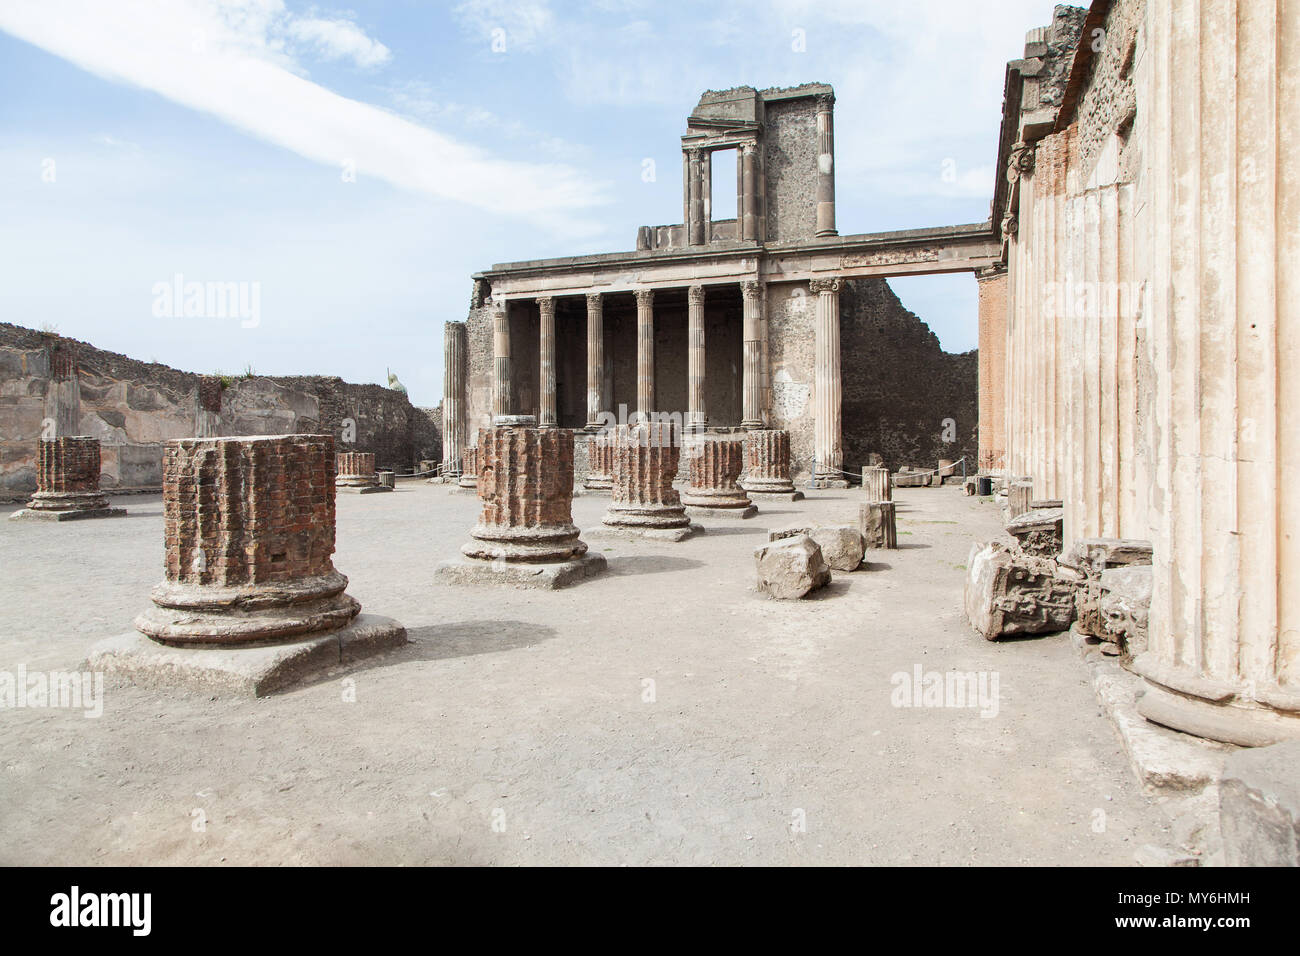 Ausgrabungsstätte Pompeji Neapel Vesuv Stock Photo